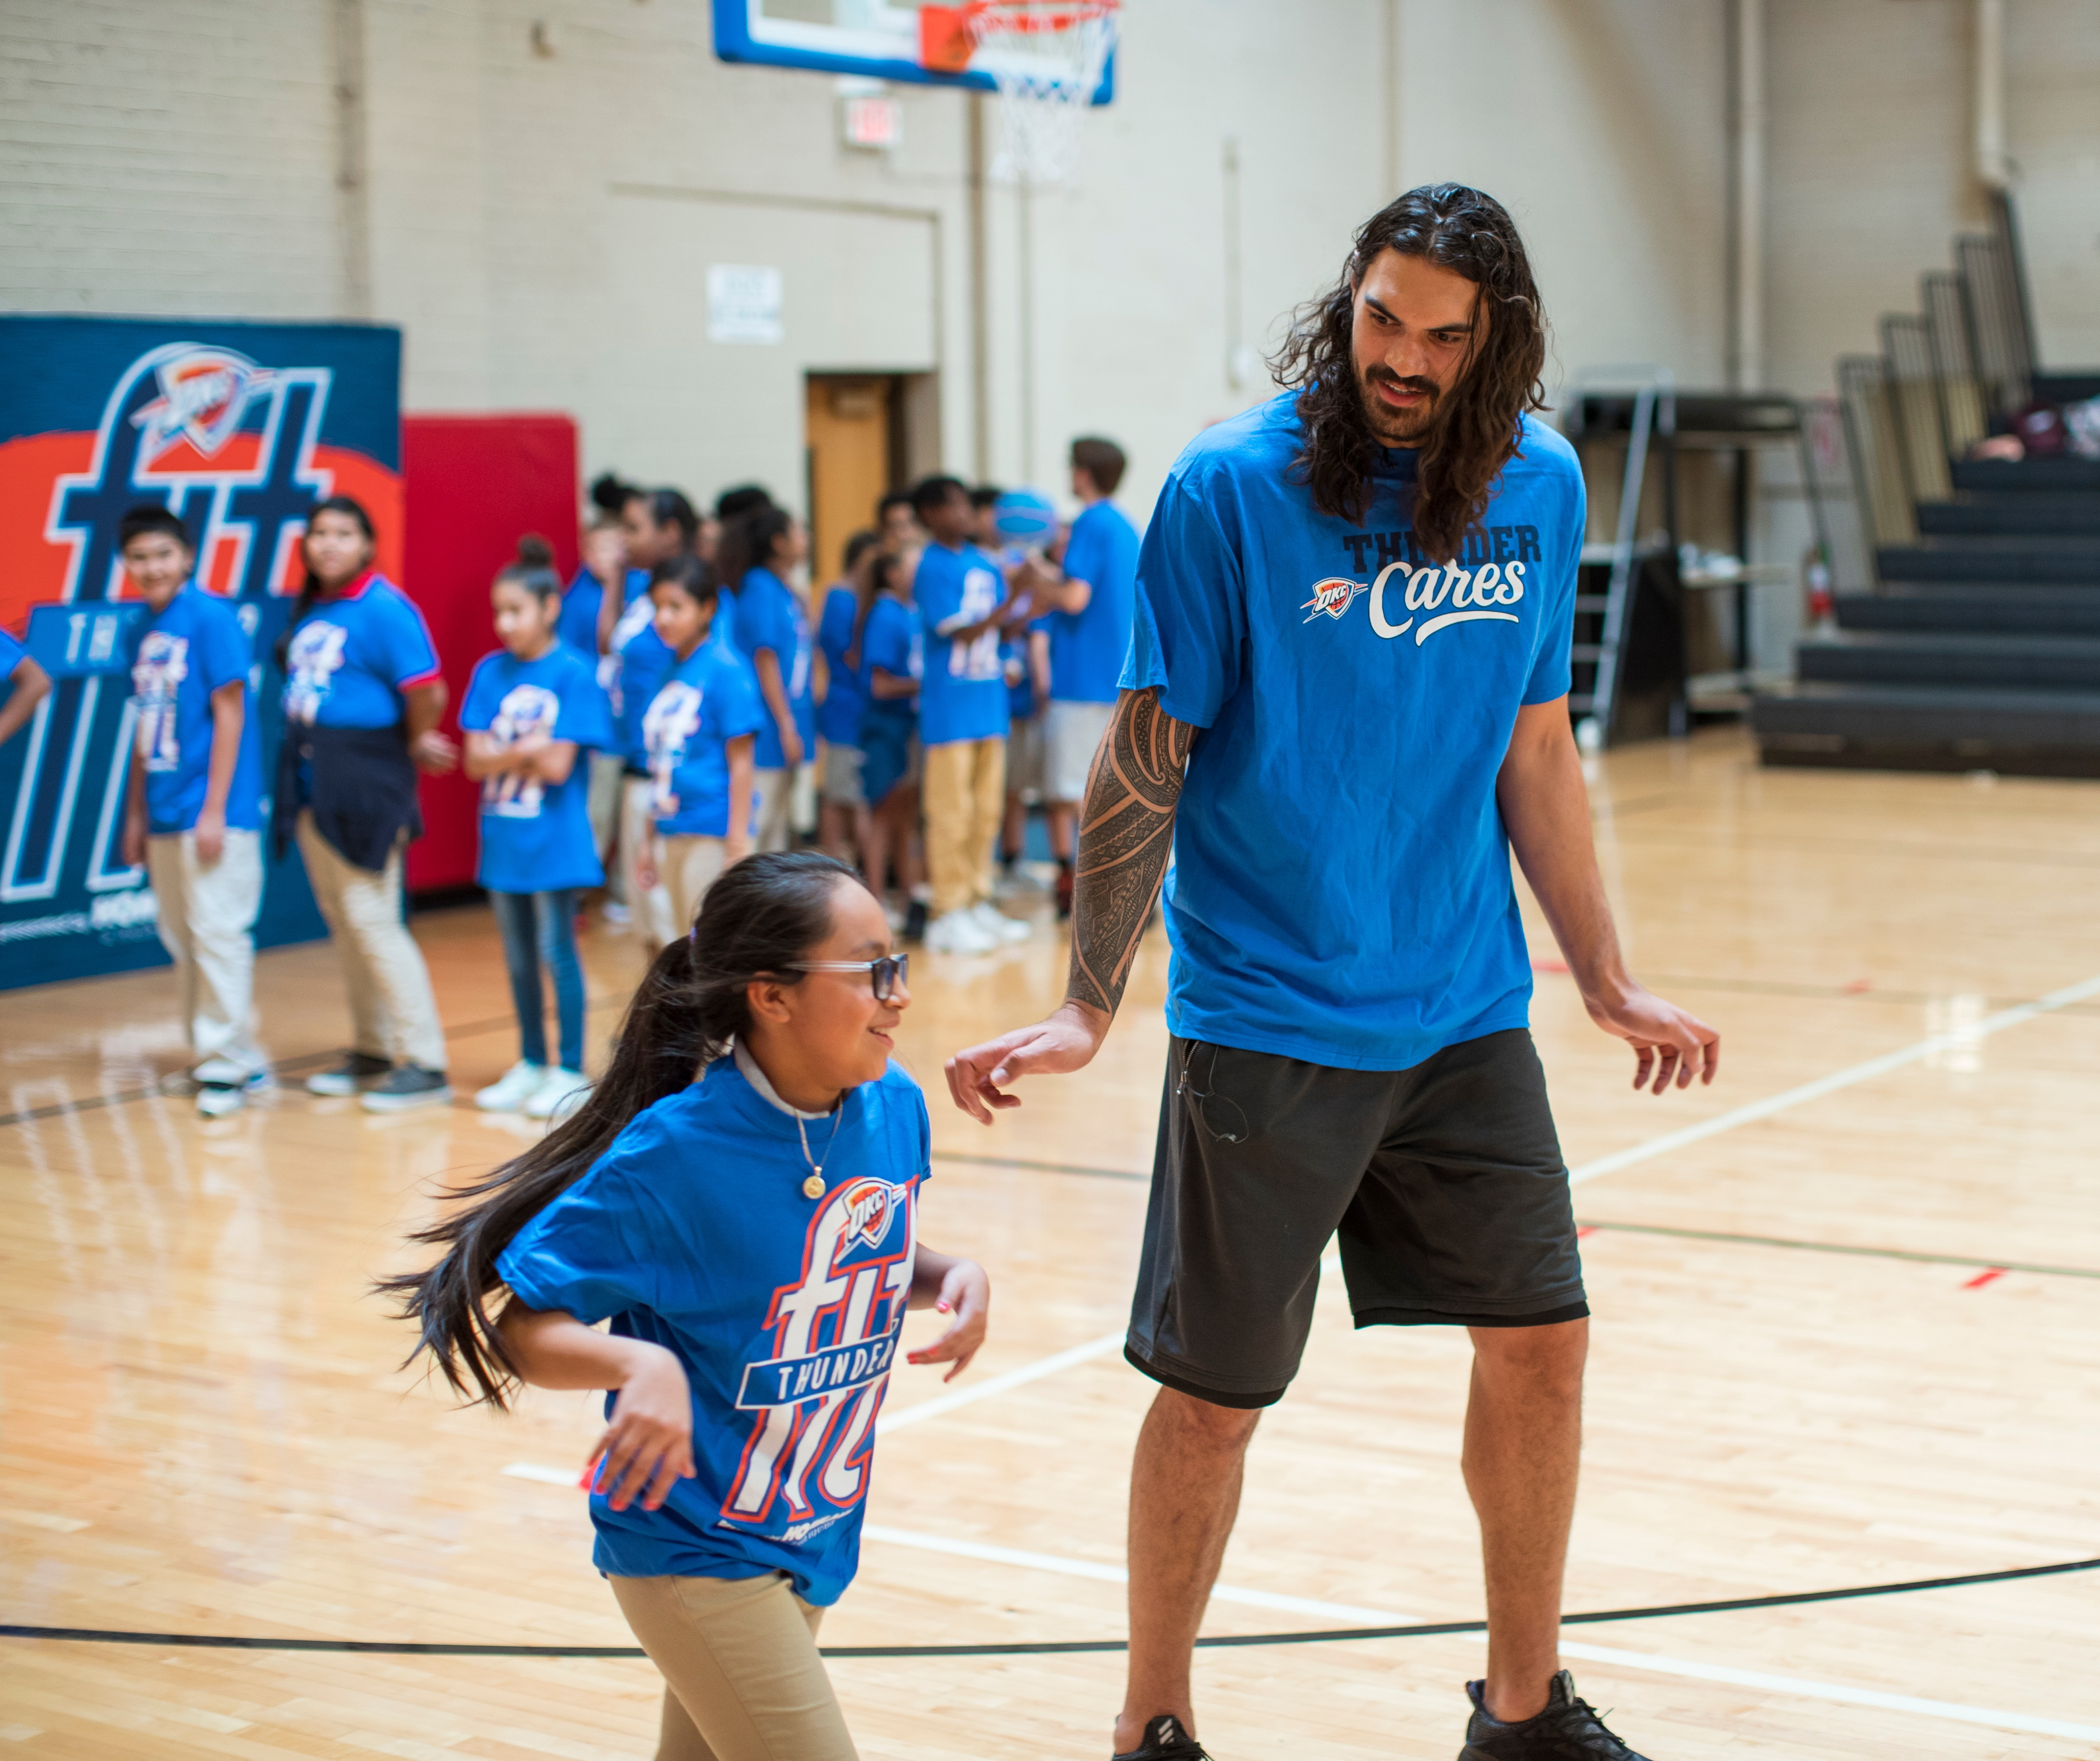 Steven Adams, Kyle Singler Connect With Youth for Fitness ...